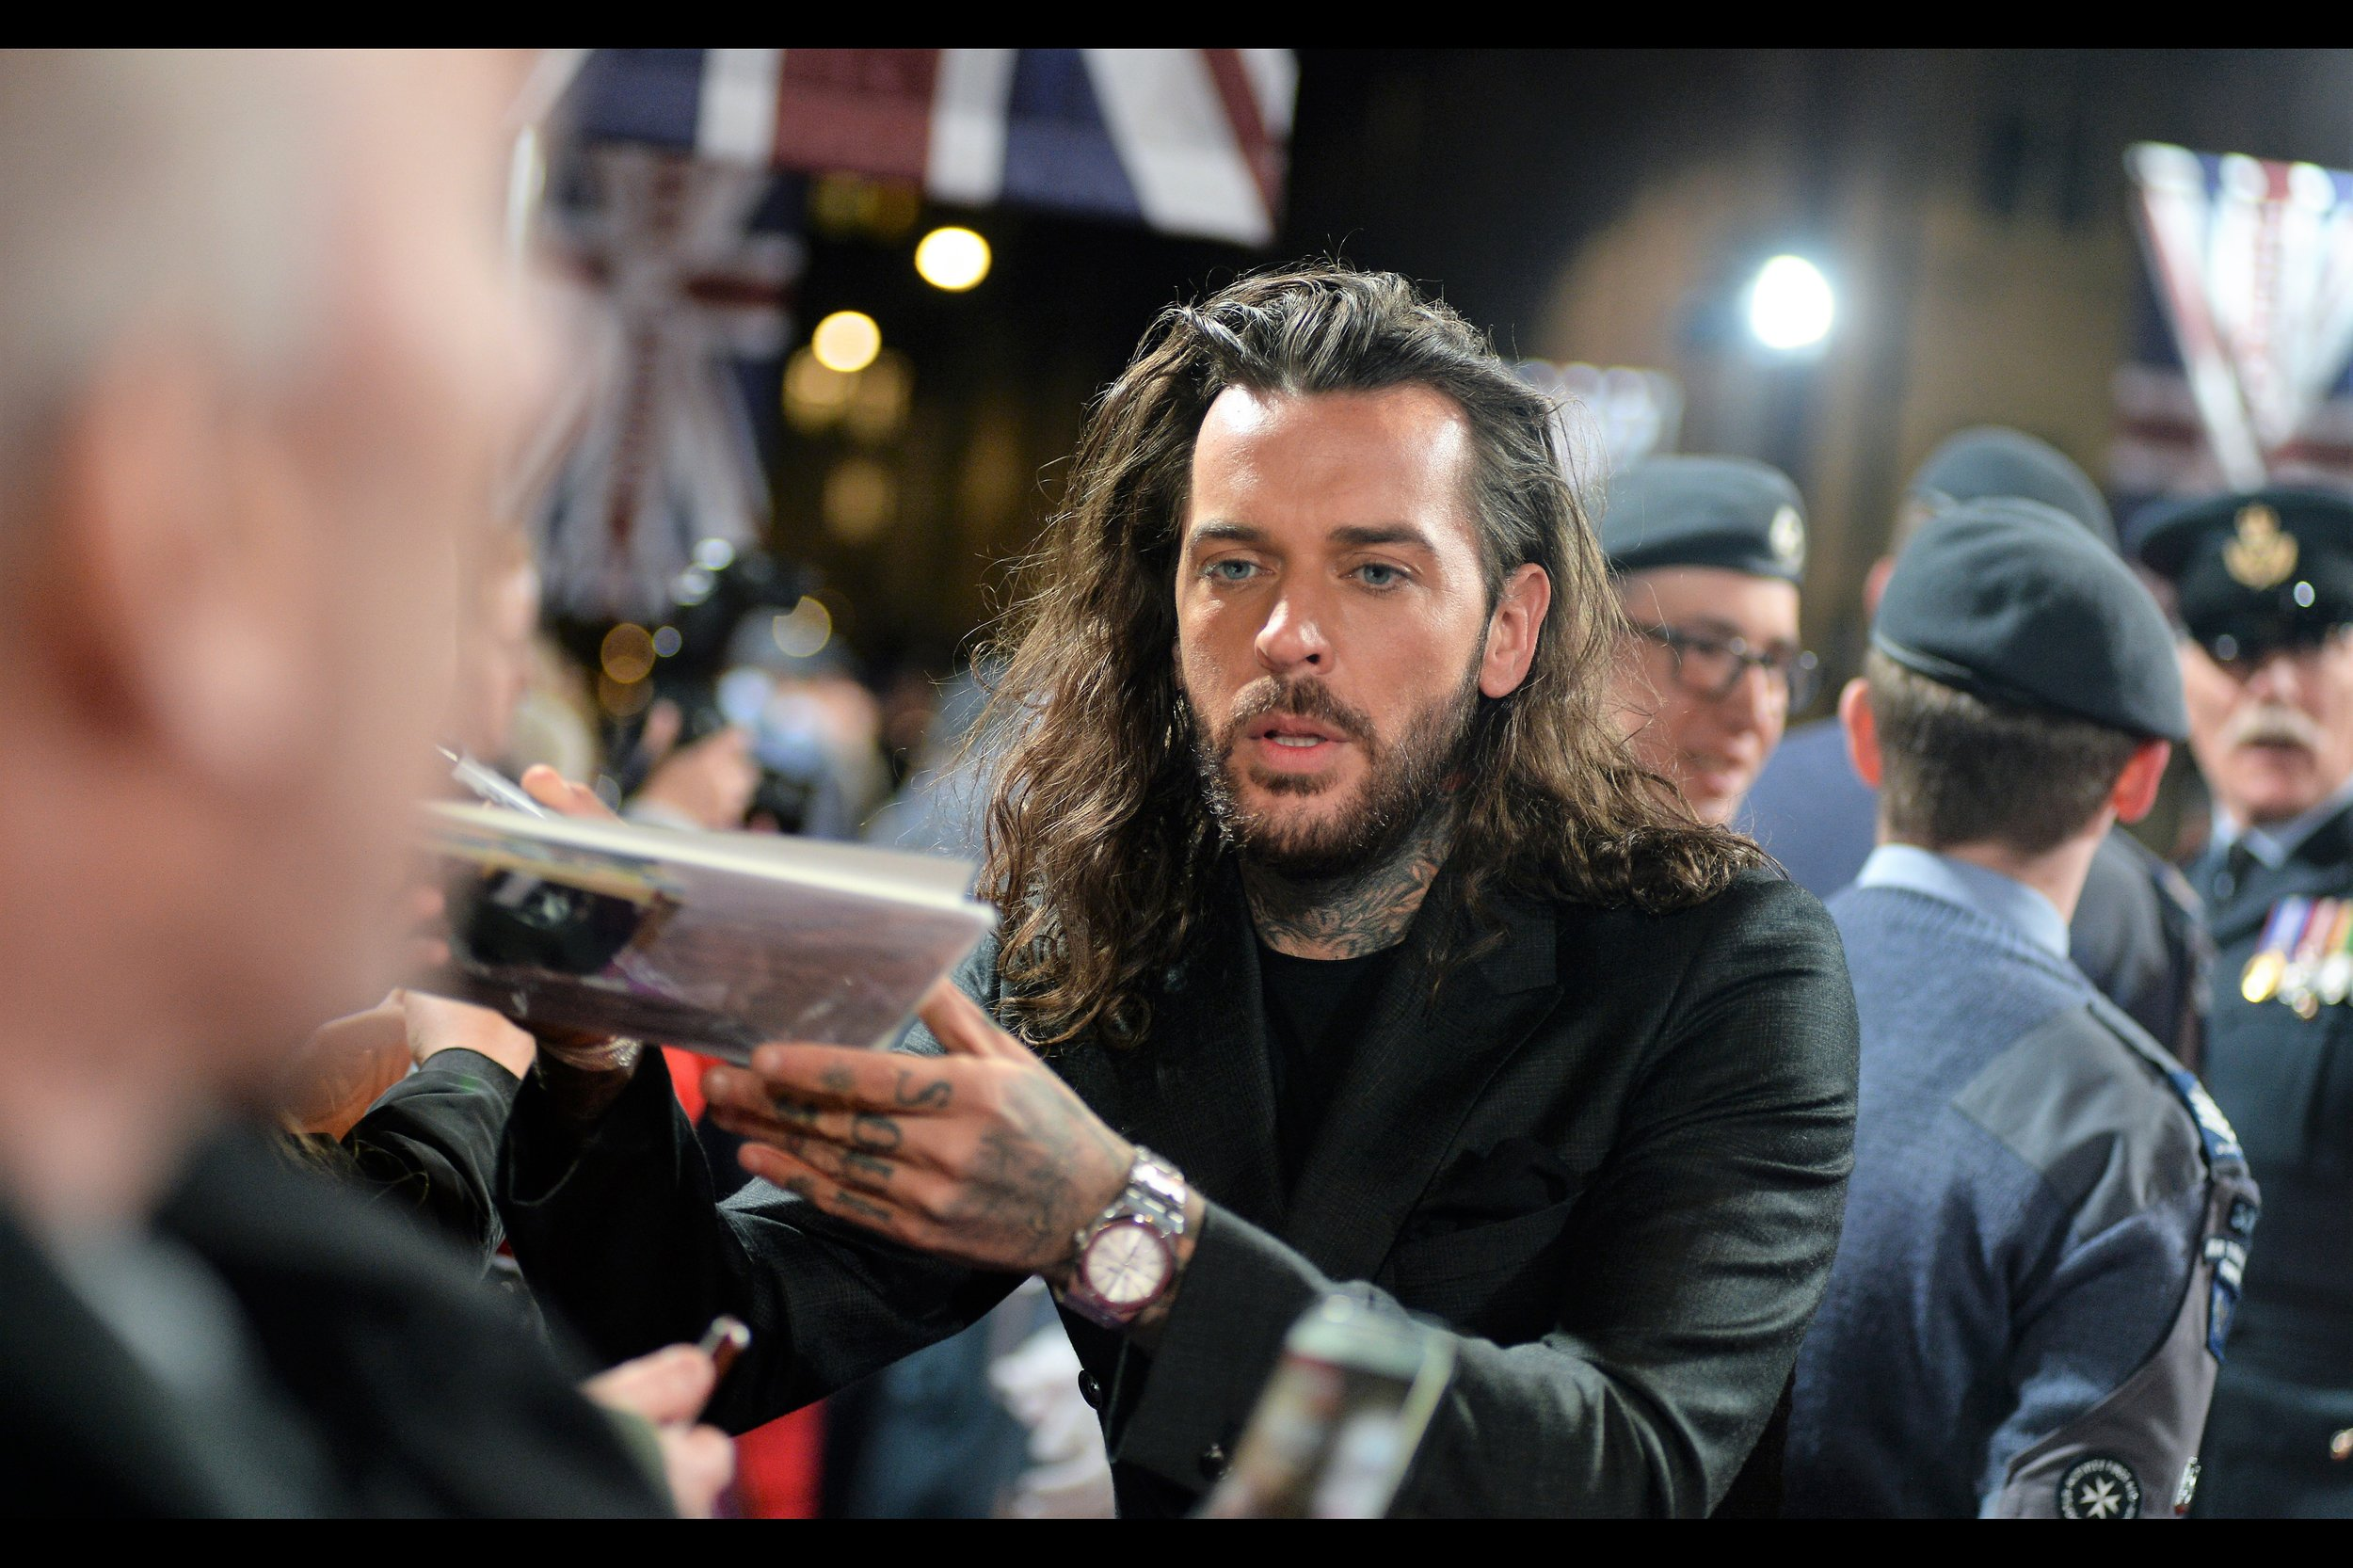 Just so you know, if rumours are true and the premiere of Aquaman coincides with the O2 Arena concert of film composer Ennio Morricone I already have tickets for, I'll be recycling this as a photo of Jason Momoa and faking that journal. For now, though, he's Paul Wicks. (Who?)